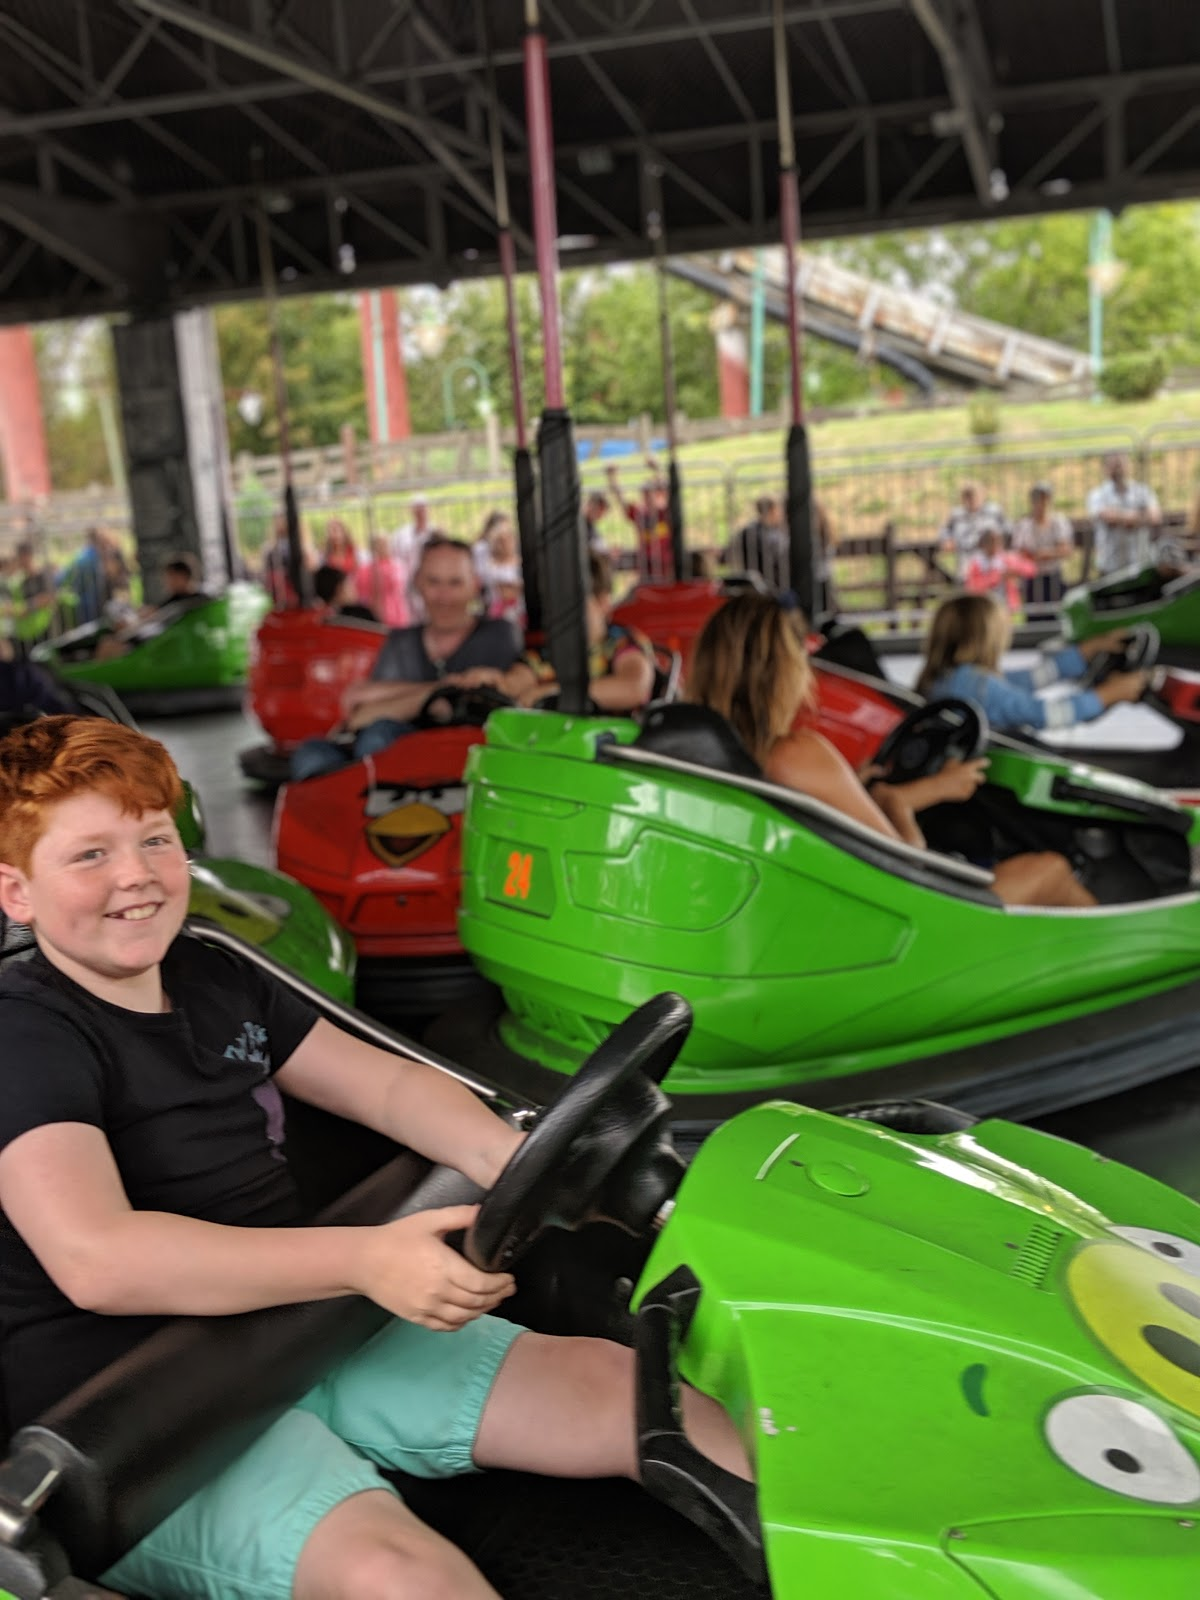 Exploring the Southern Merlin Theme Parks with Tweens  - Angry Bird Dodgems at Thorpe Park